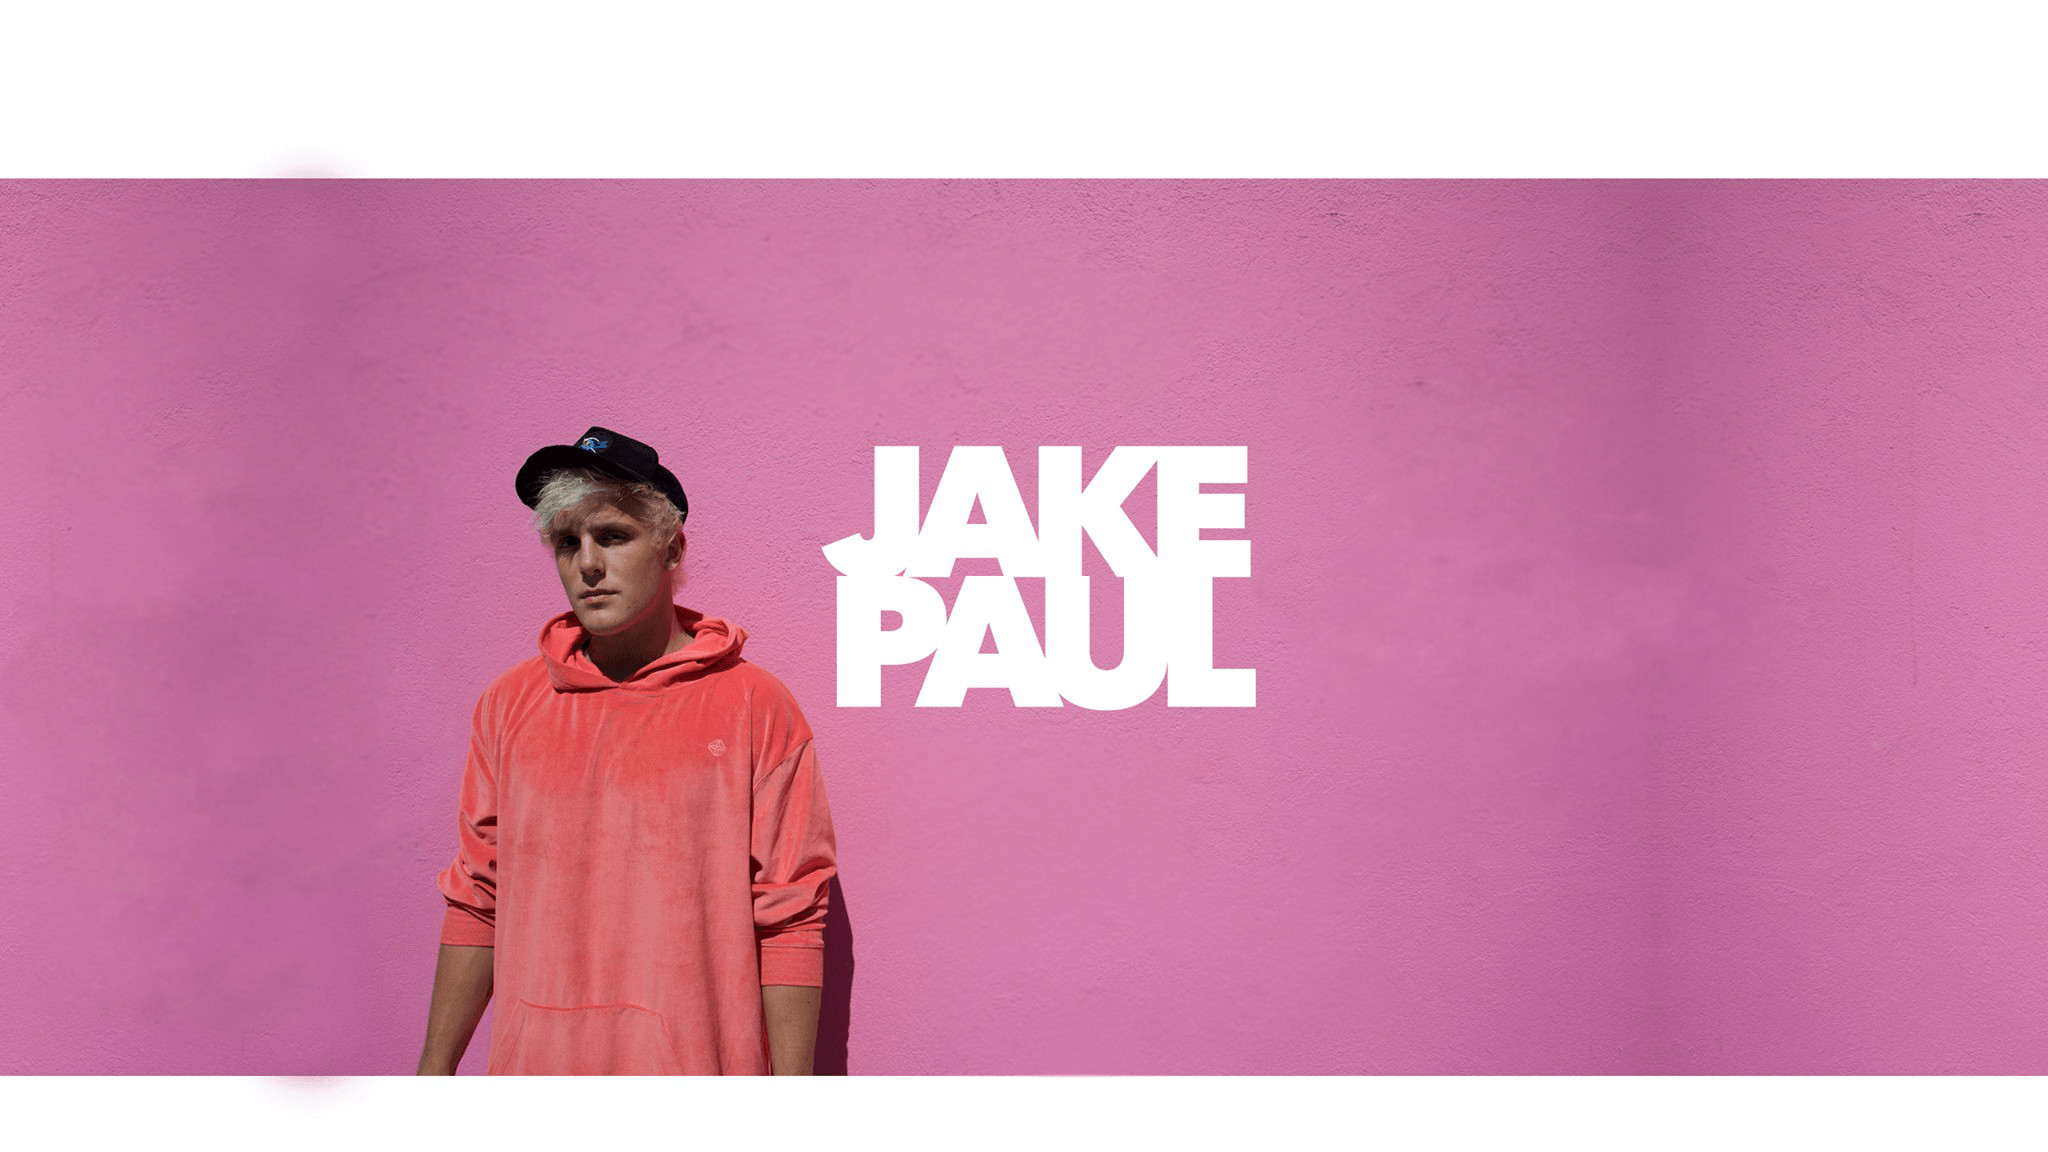 Jake Paul Wallpapers \u00b7\u2460